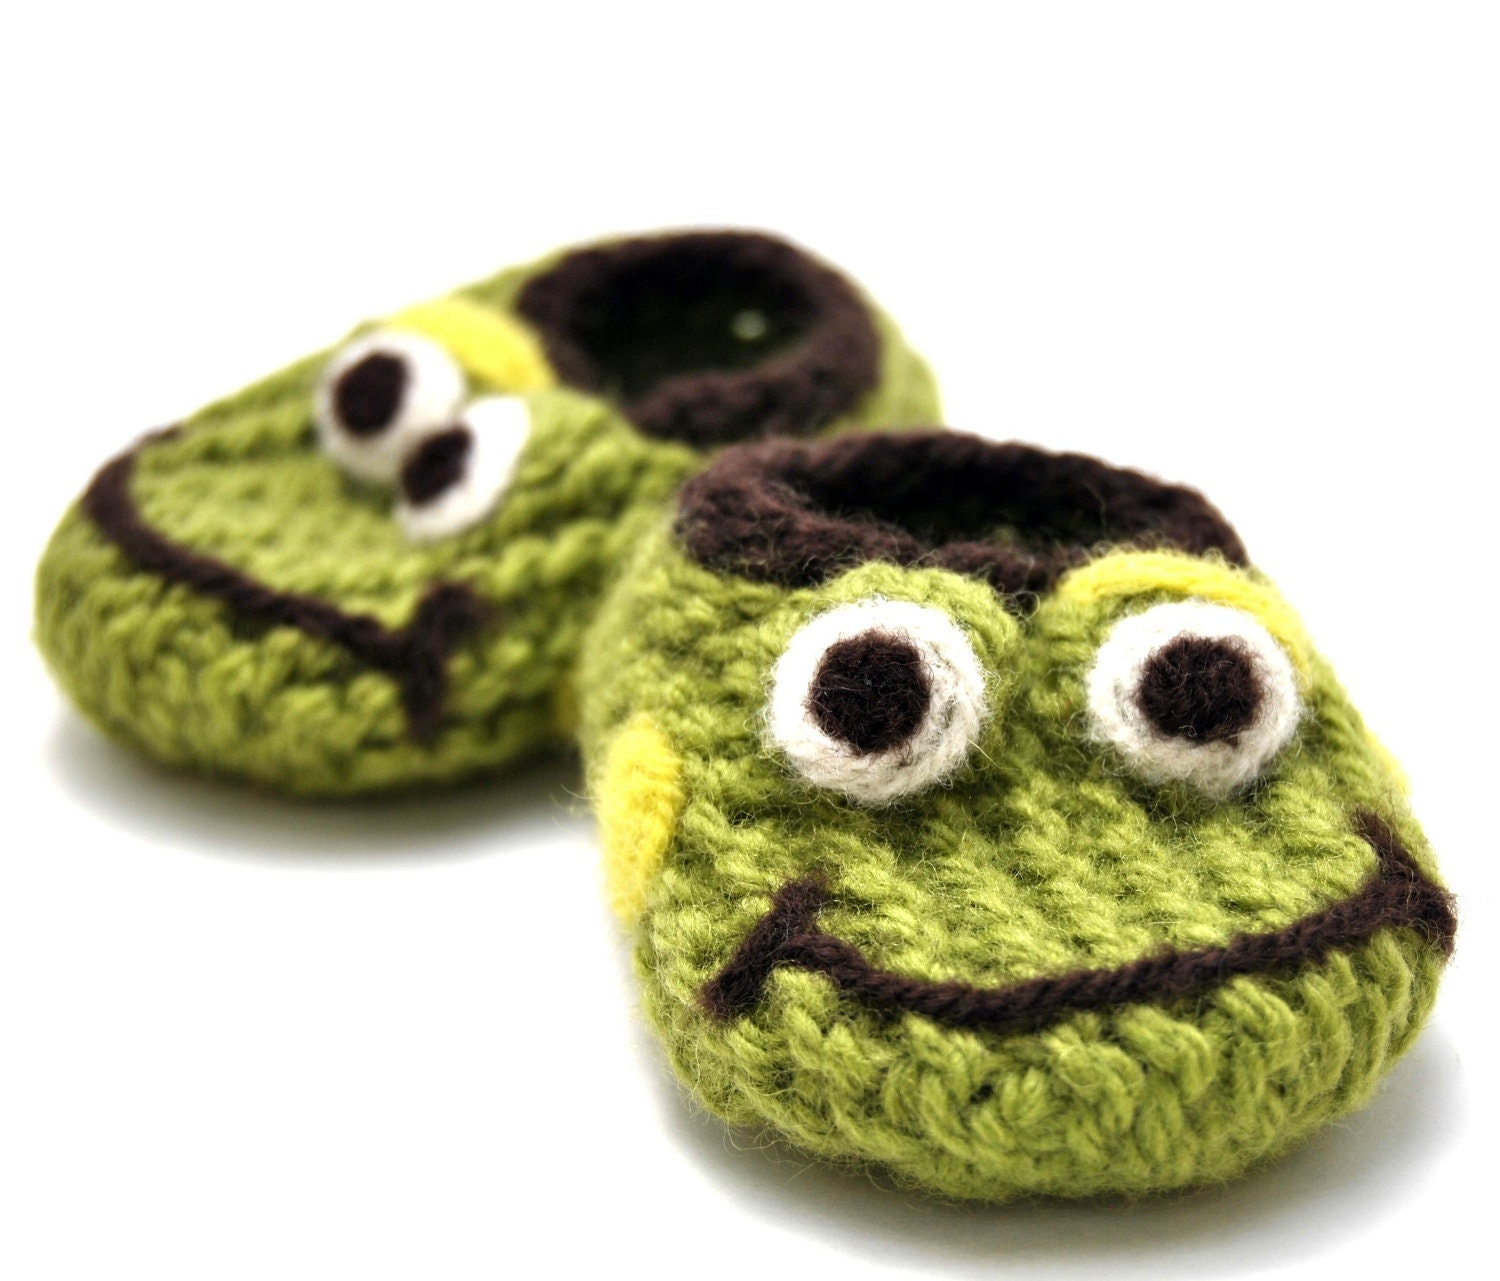 Knitting Pattern For Frog Slippers : Wool Baby Frog Slippers Wool Baby Slippers Crib by ...